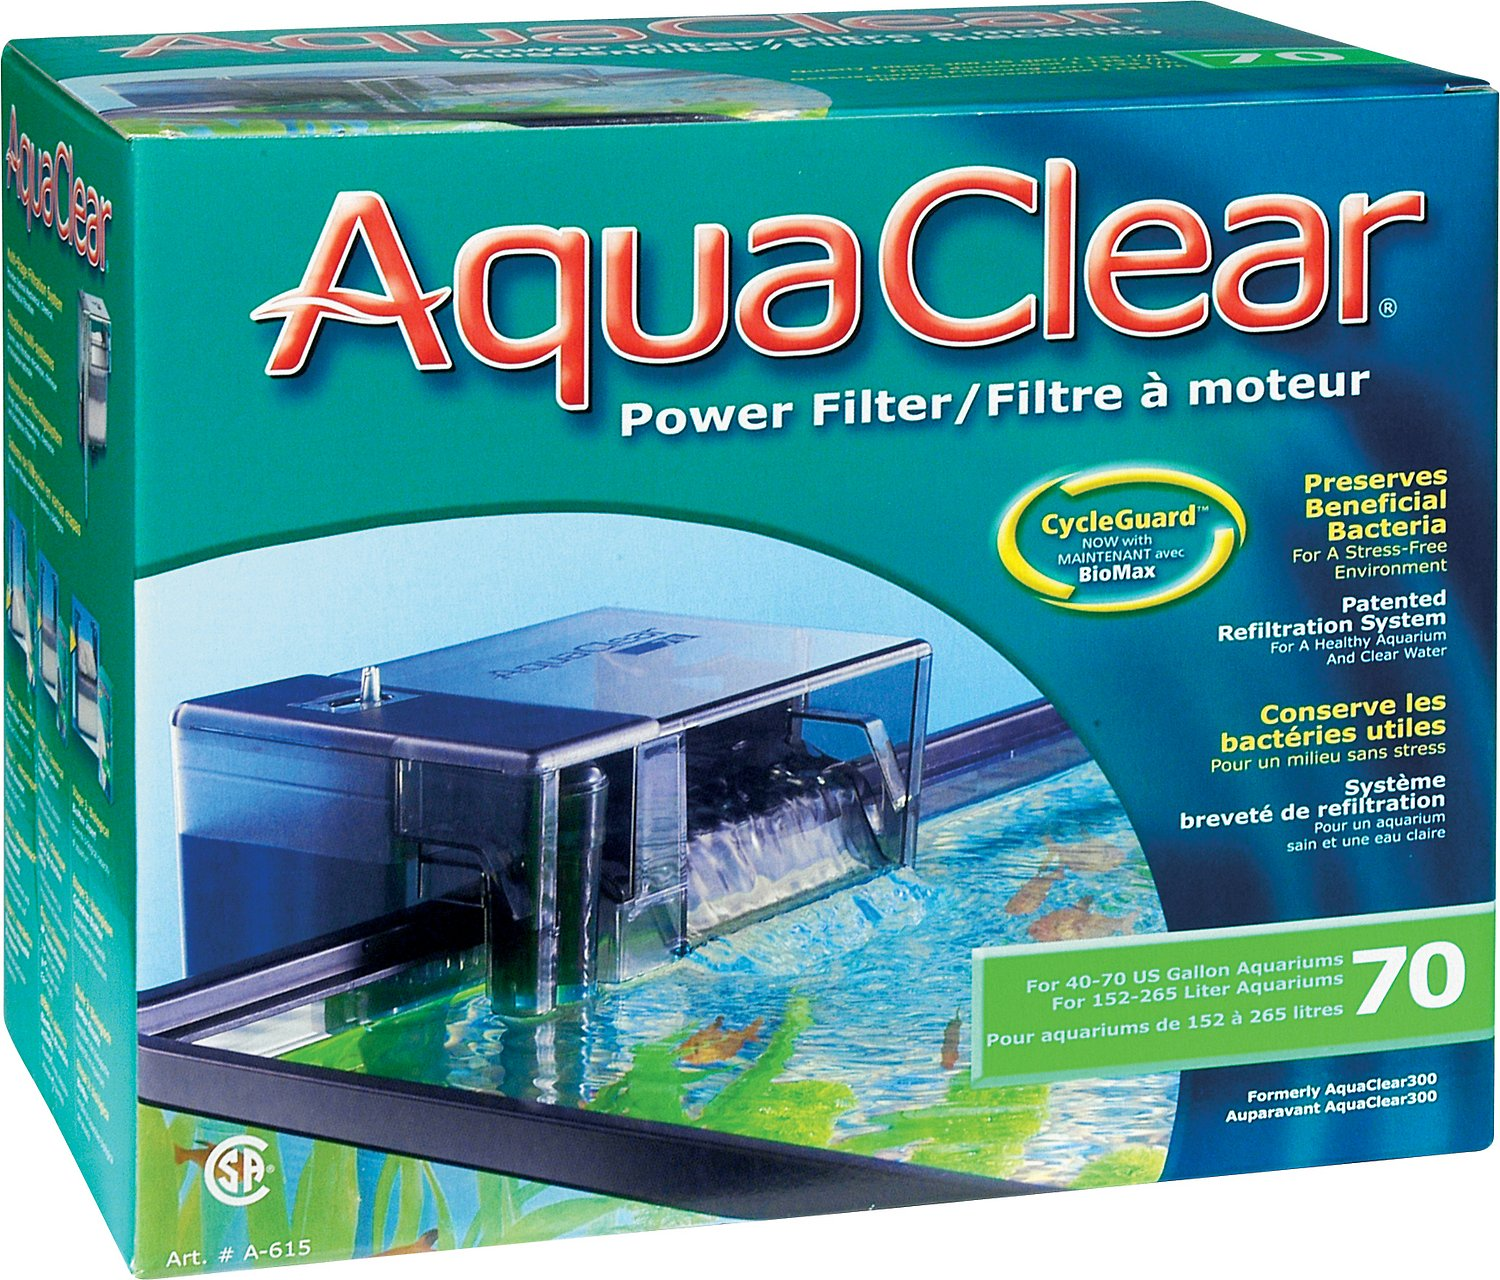 AquaClear CycleGuard Power Filter Image